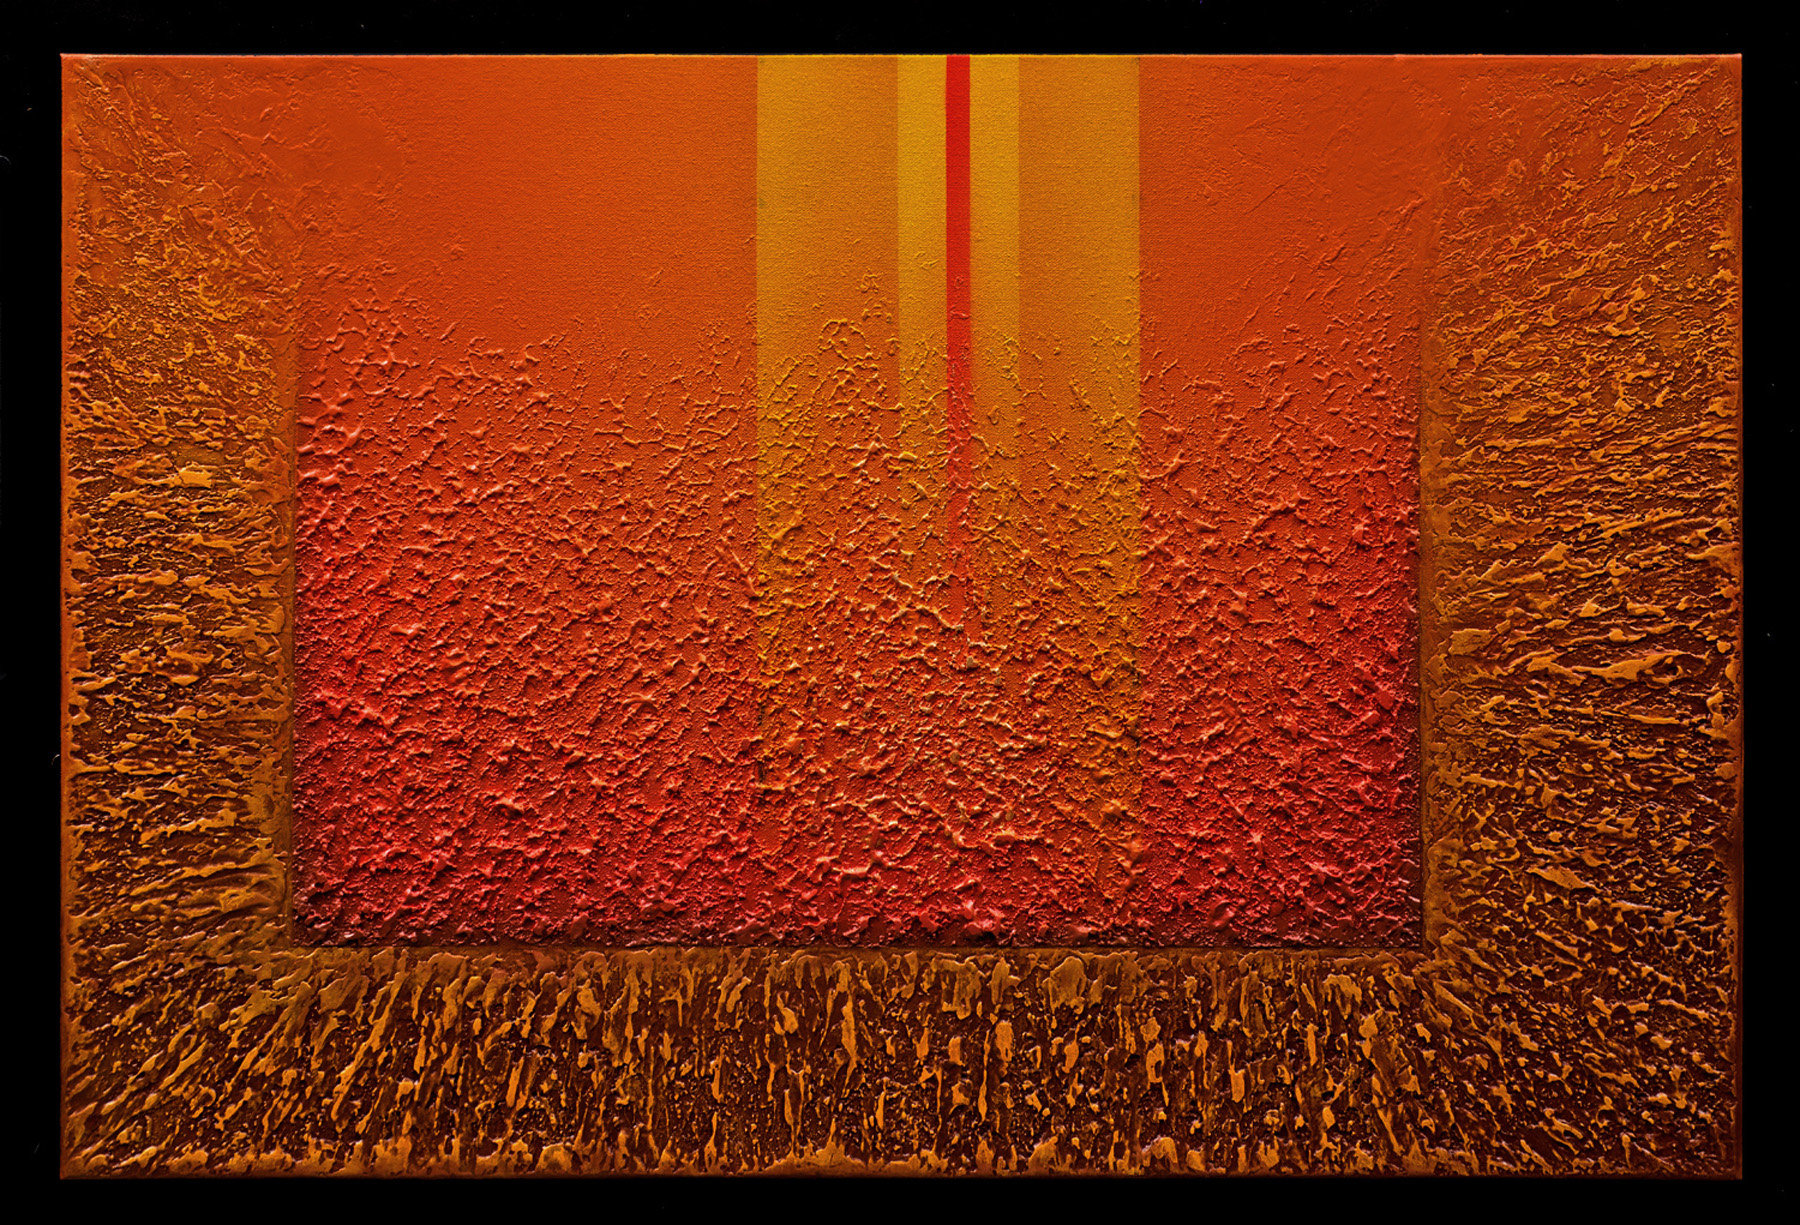 Art Textures Techniques Radiant Textures Series 12 By Wolfgang Gersch Acrylic